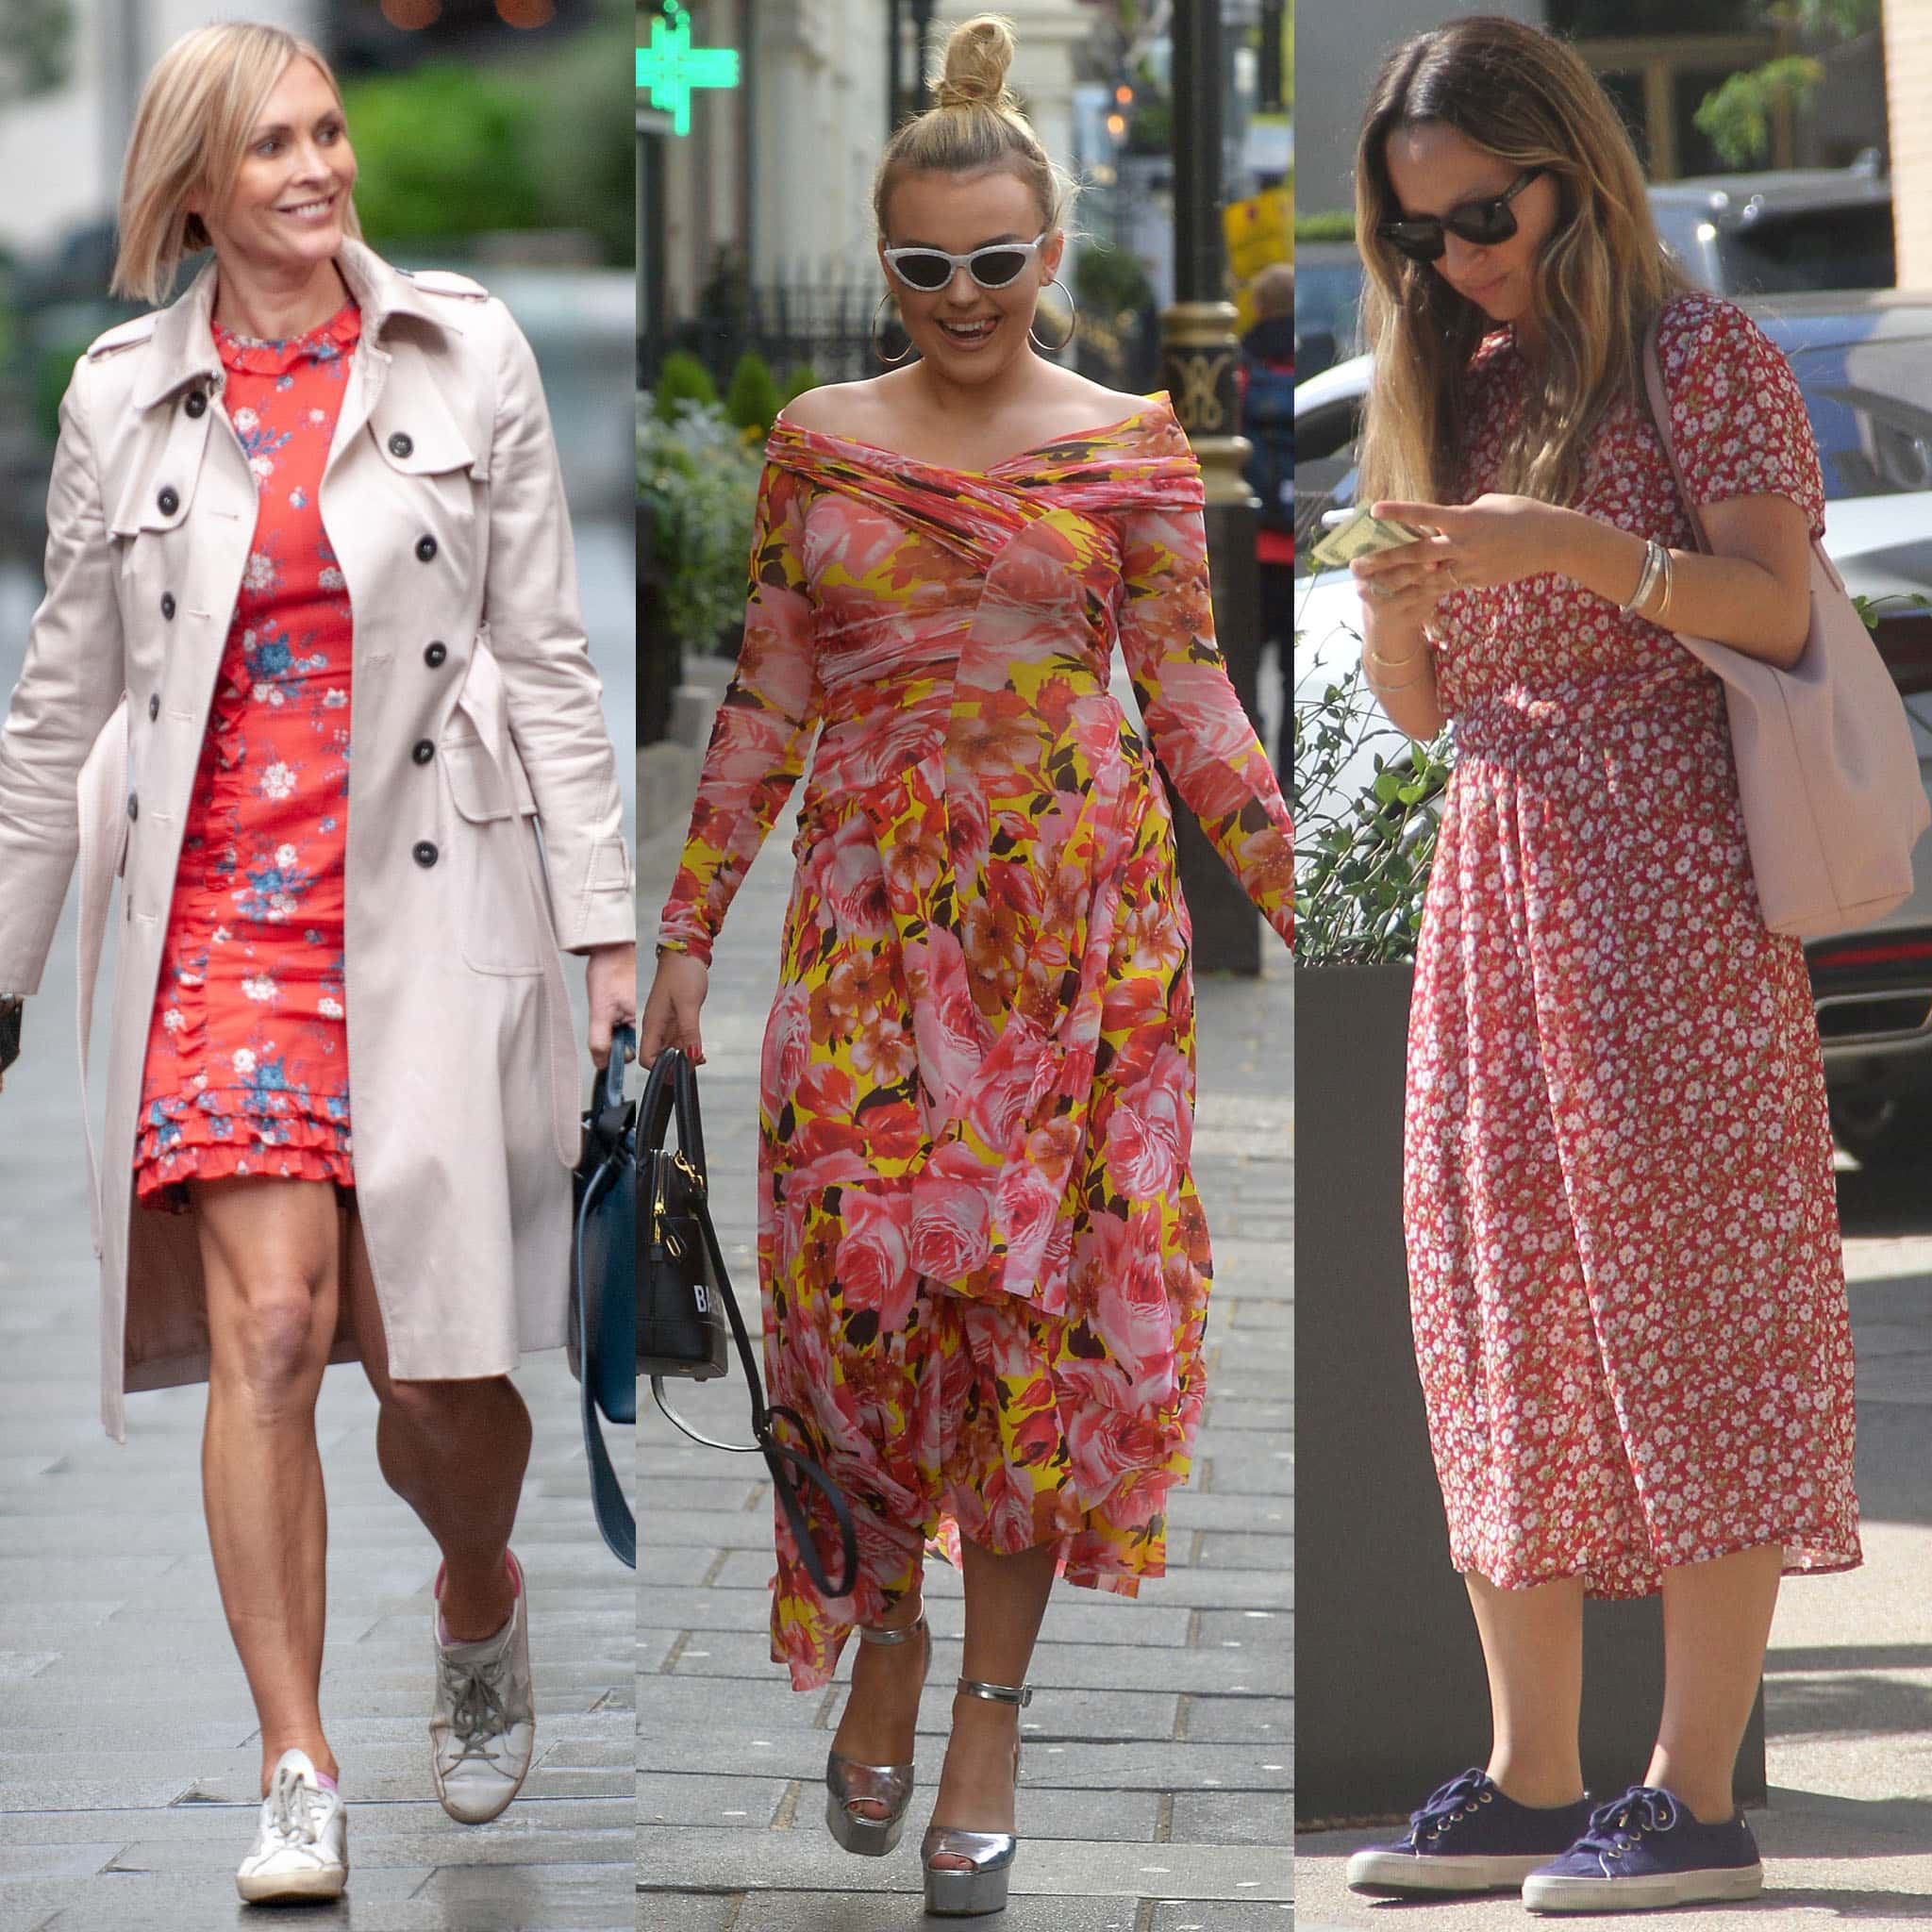 Jenni Falconer, Tallia Storm, and Jennifer Meyer pair their floral dresses with sneakers and peep-toe sandals